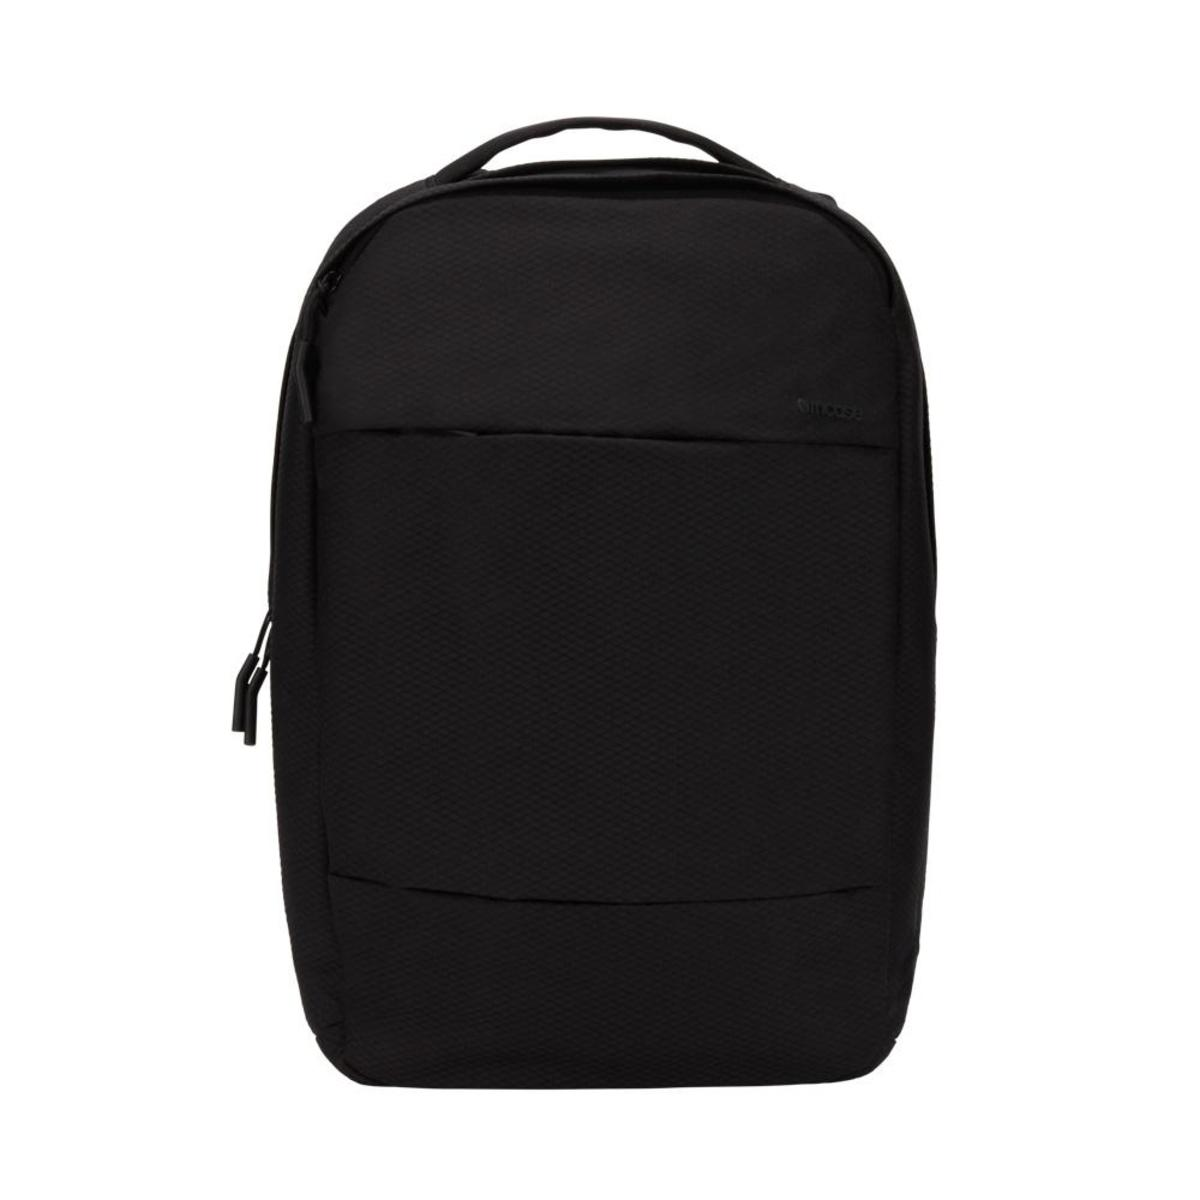 City Compact Backpack  Black Diamond Ripstop